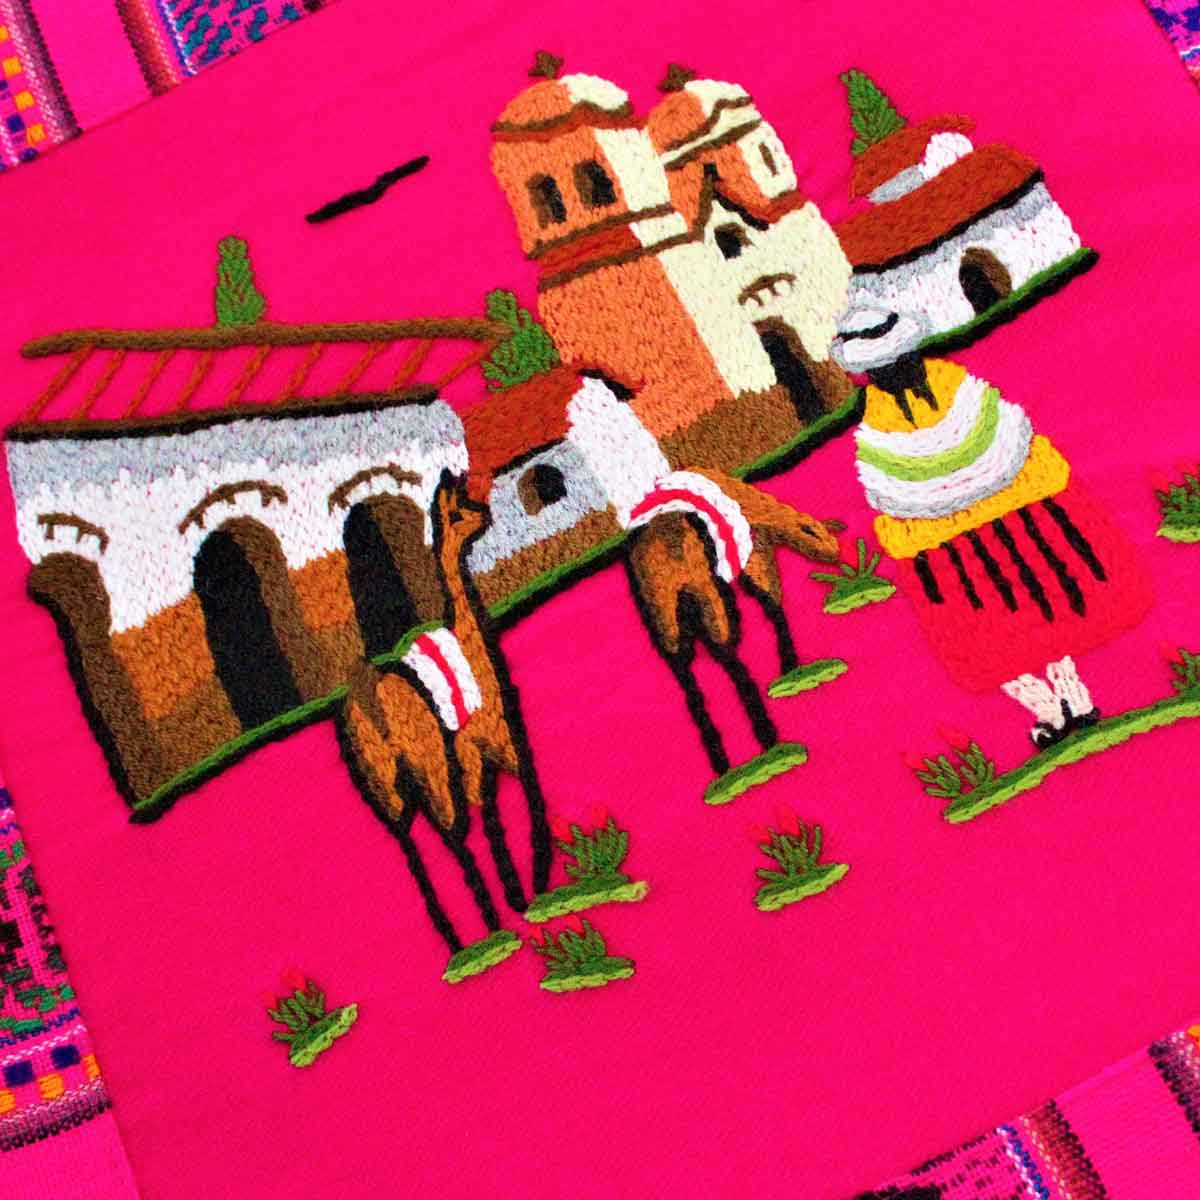 Inka-Products-Housse Coussin Péruvienne-Fuchsia Pueblo Andino-2